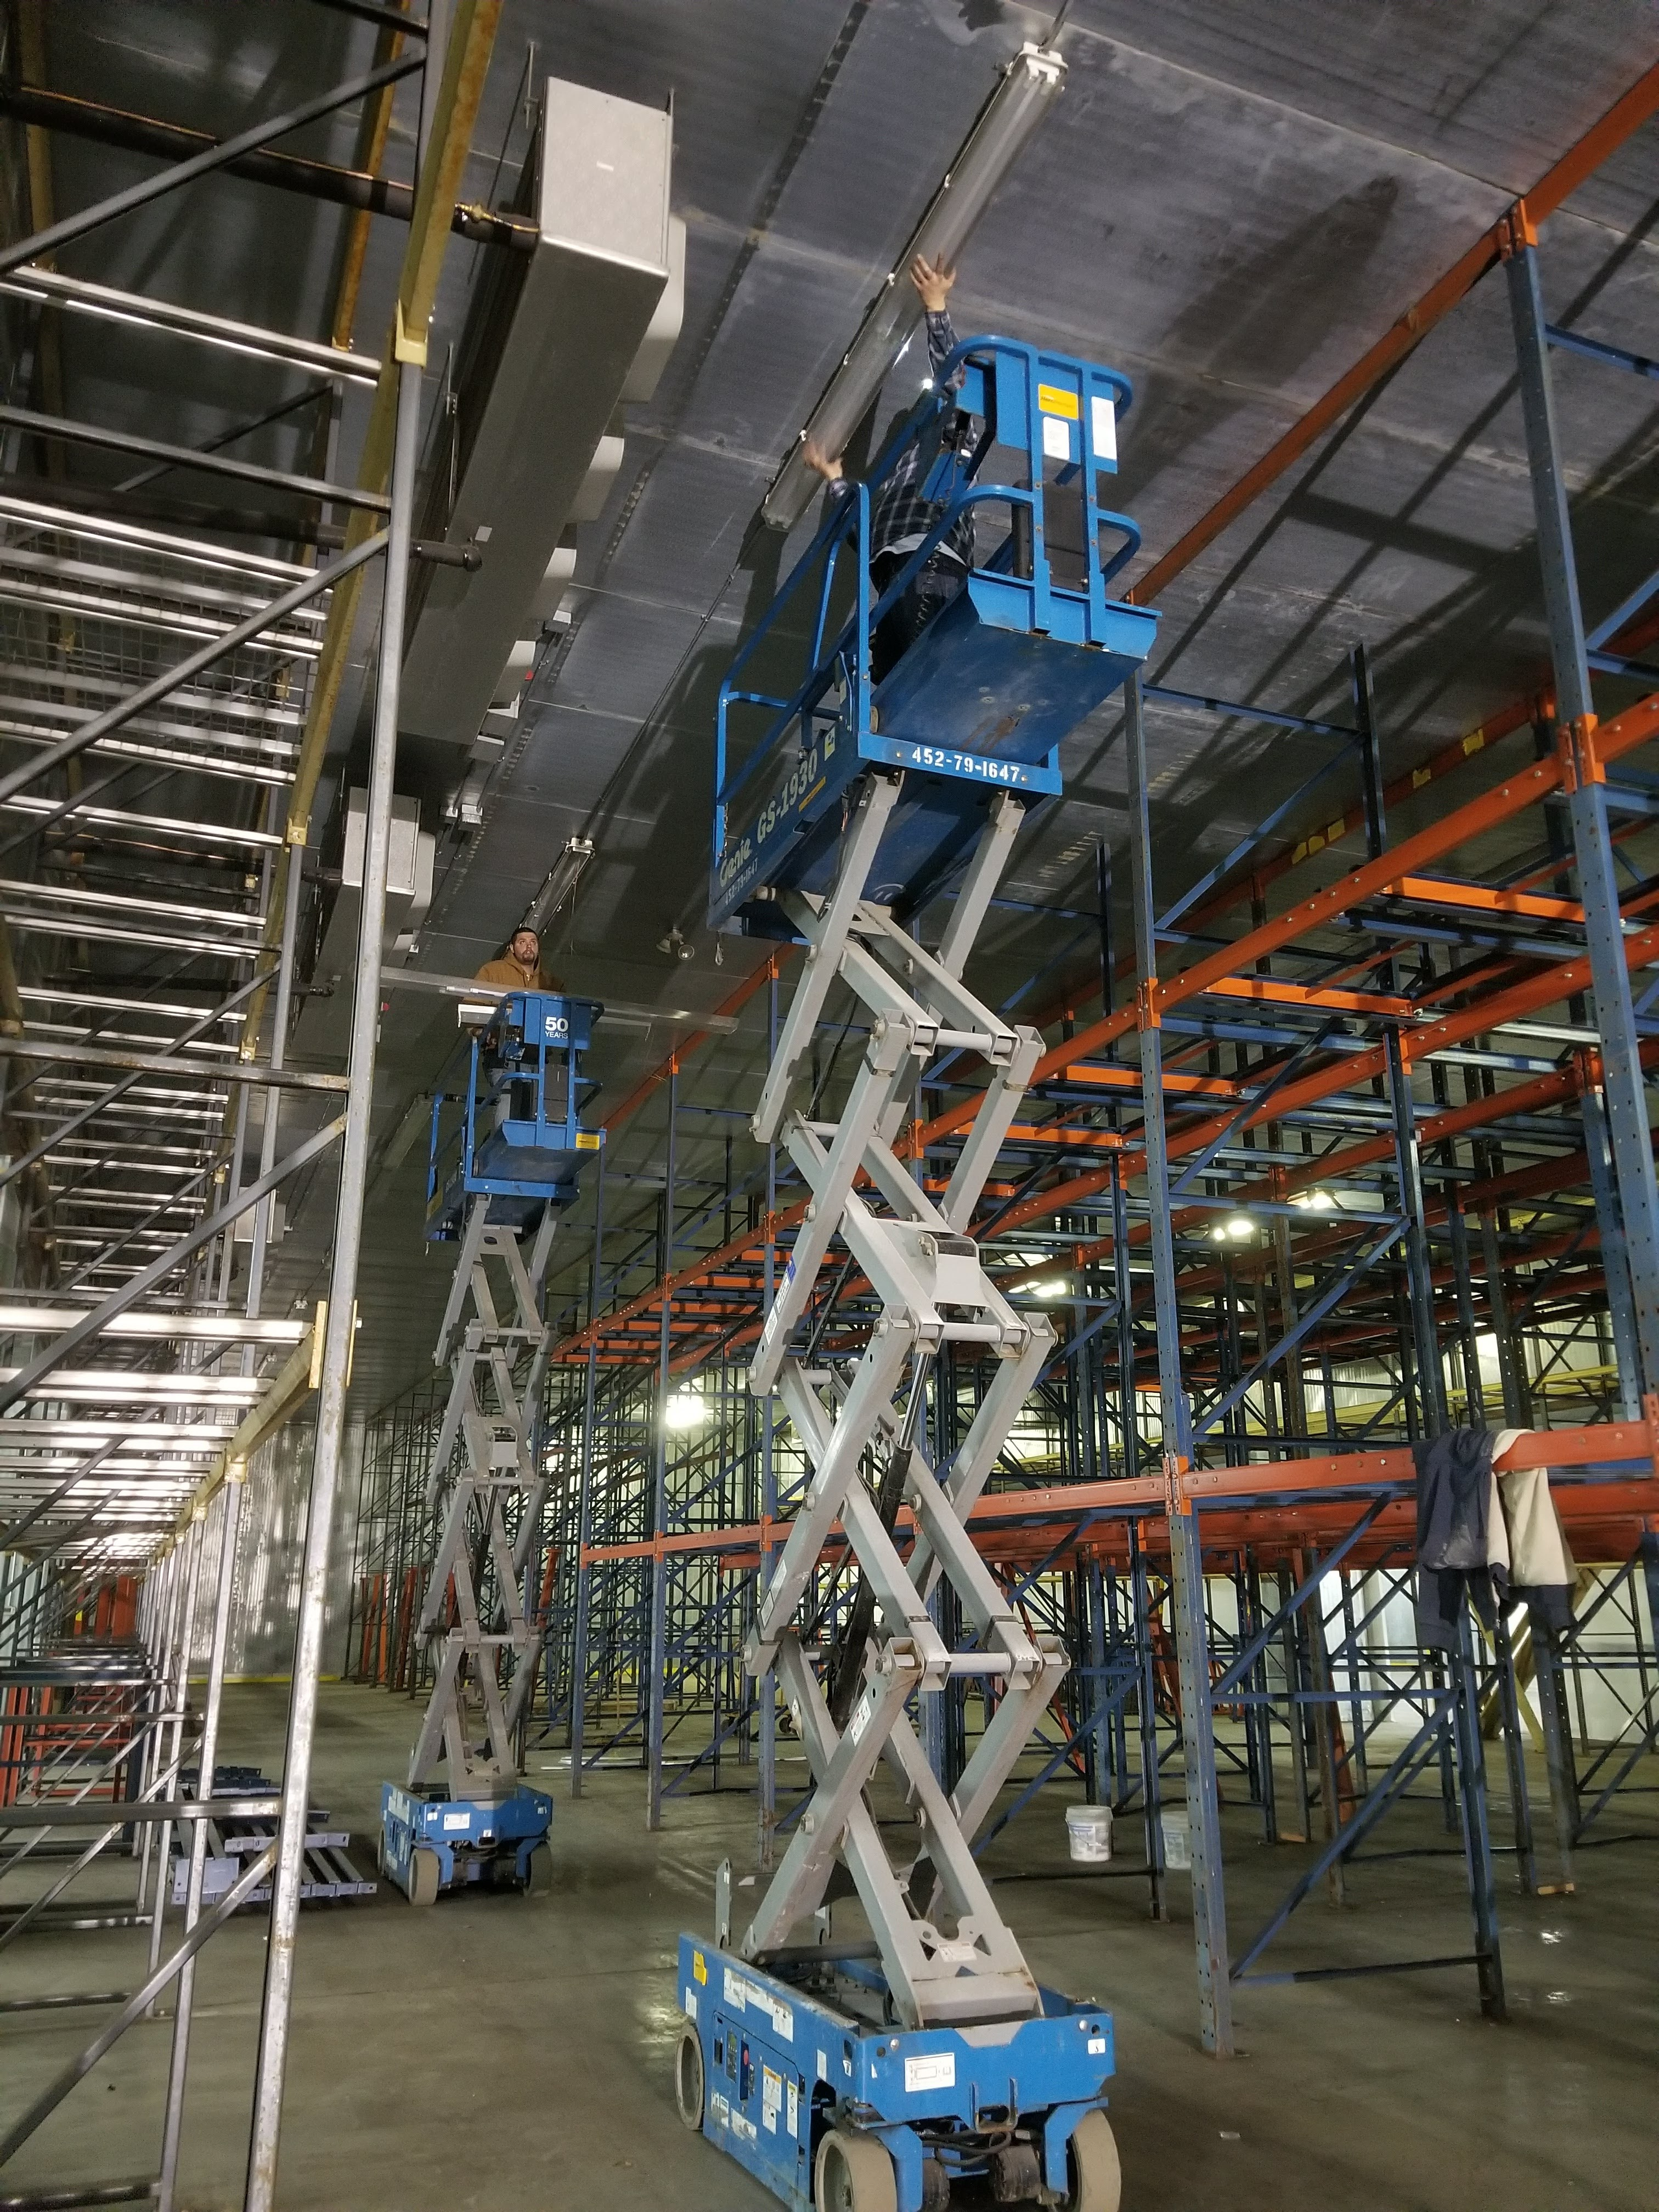 Scissor Lifts in a Warehouse Installation